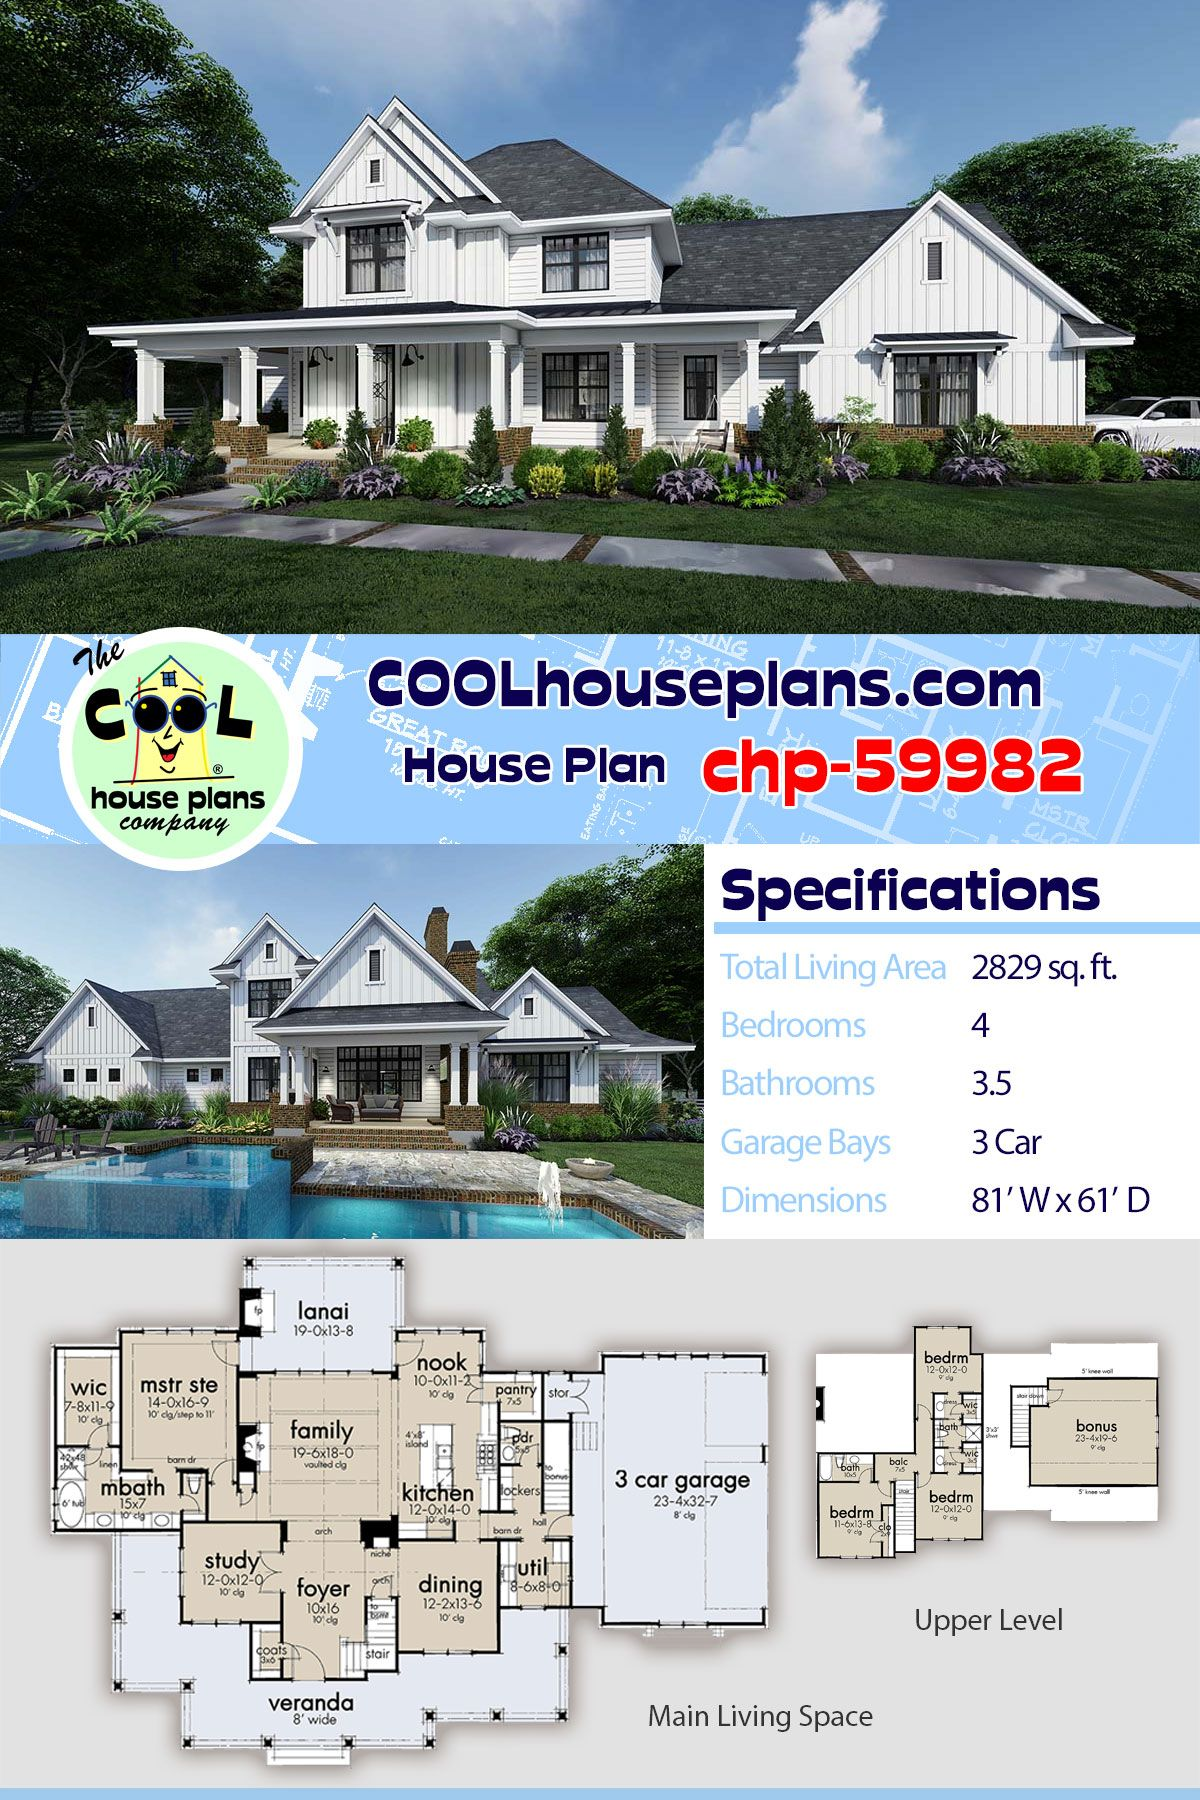 New Farmhouse Home Plan With 4 Bedrooms And 3 5 Bathrooms At Cool House Plans Farmhome Collection House Plans Farmhouse Farmhouse Style House Plans House Plans